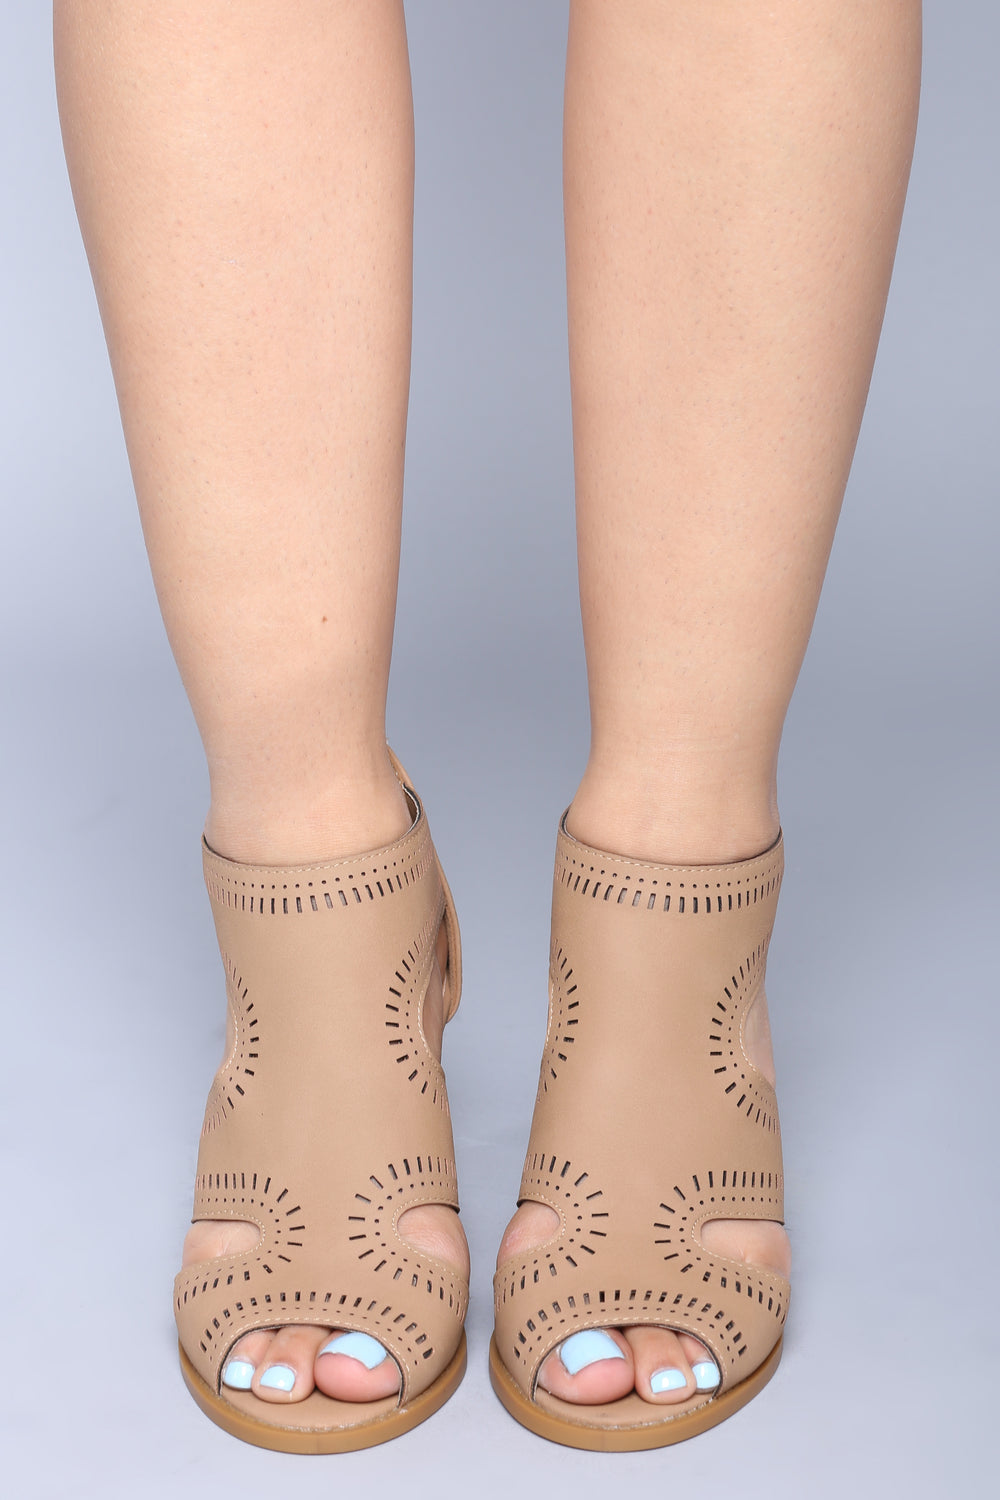 Low Key Heeled Sandal - Tan